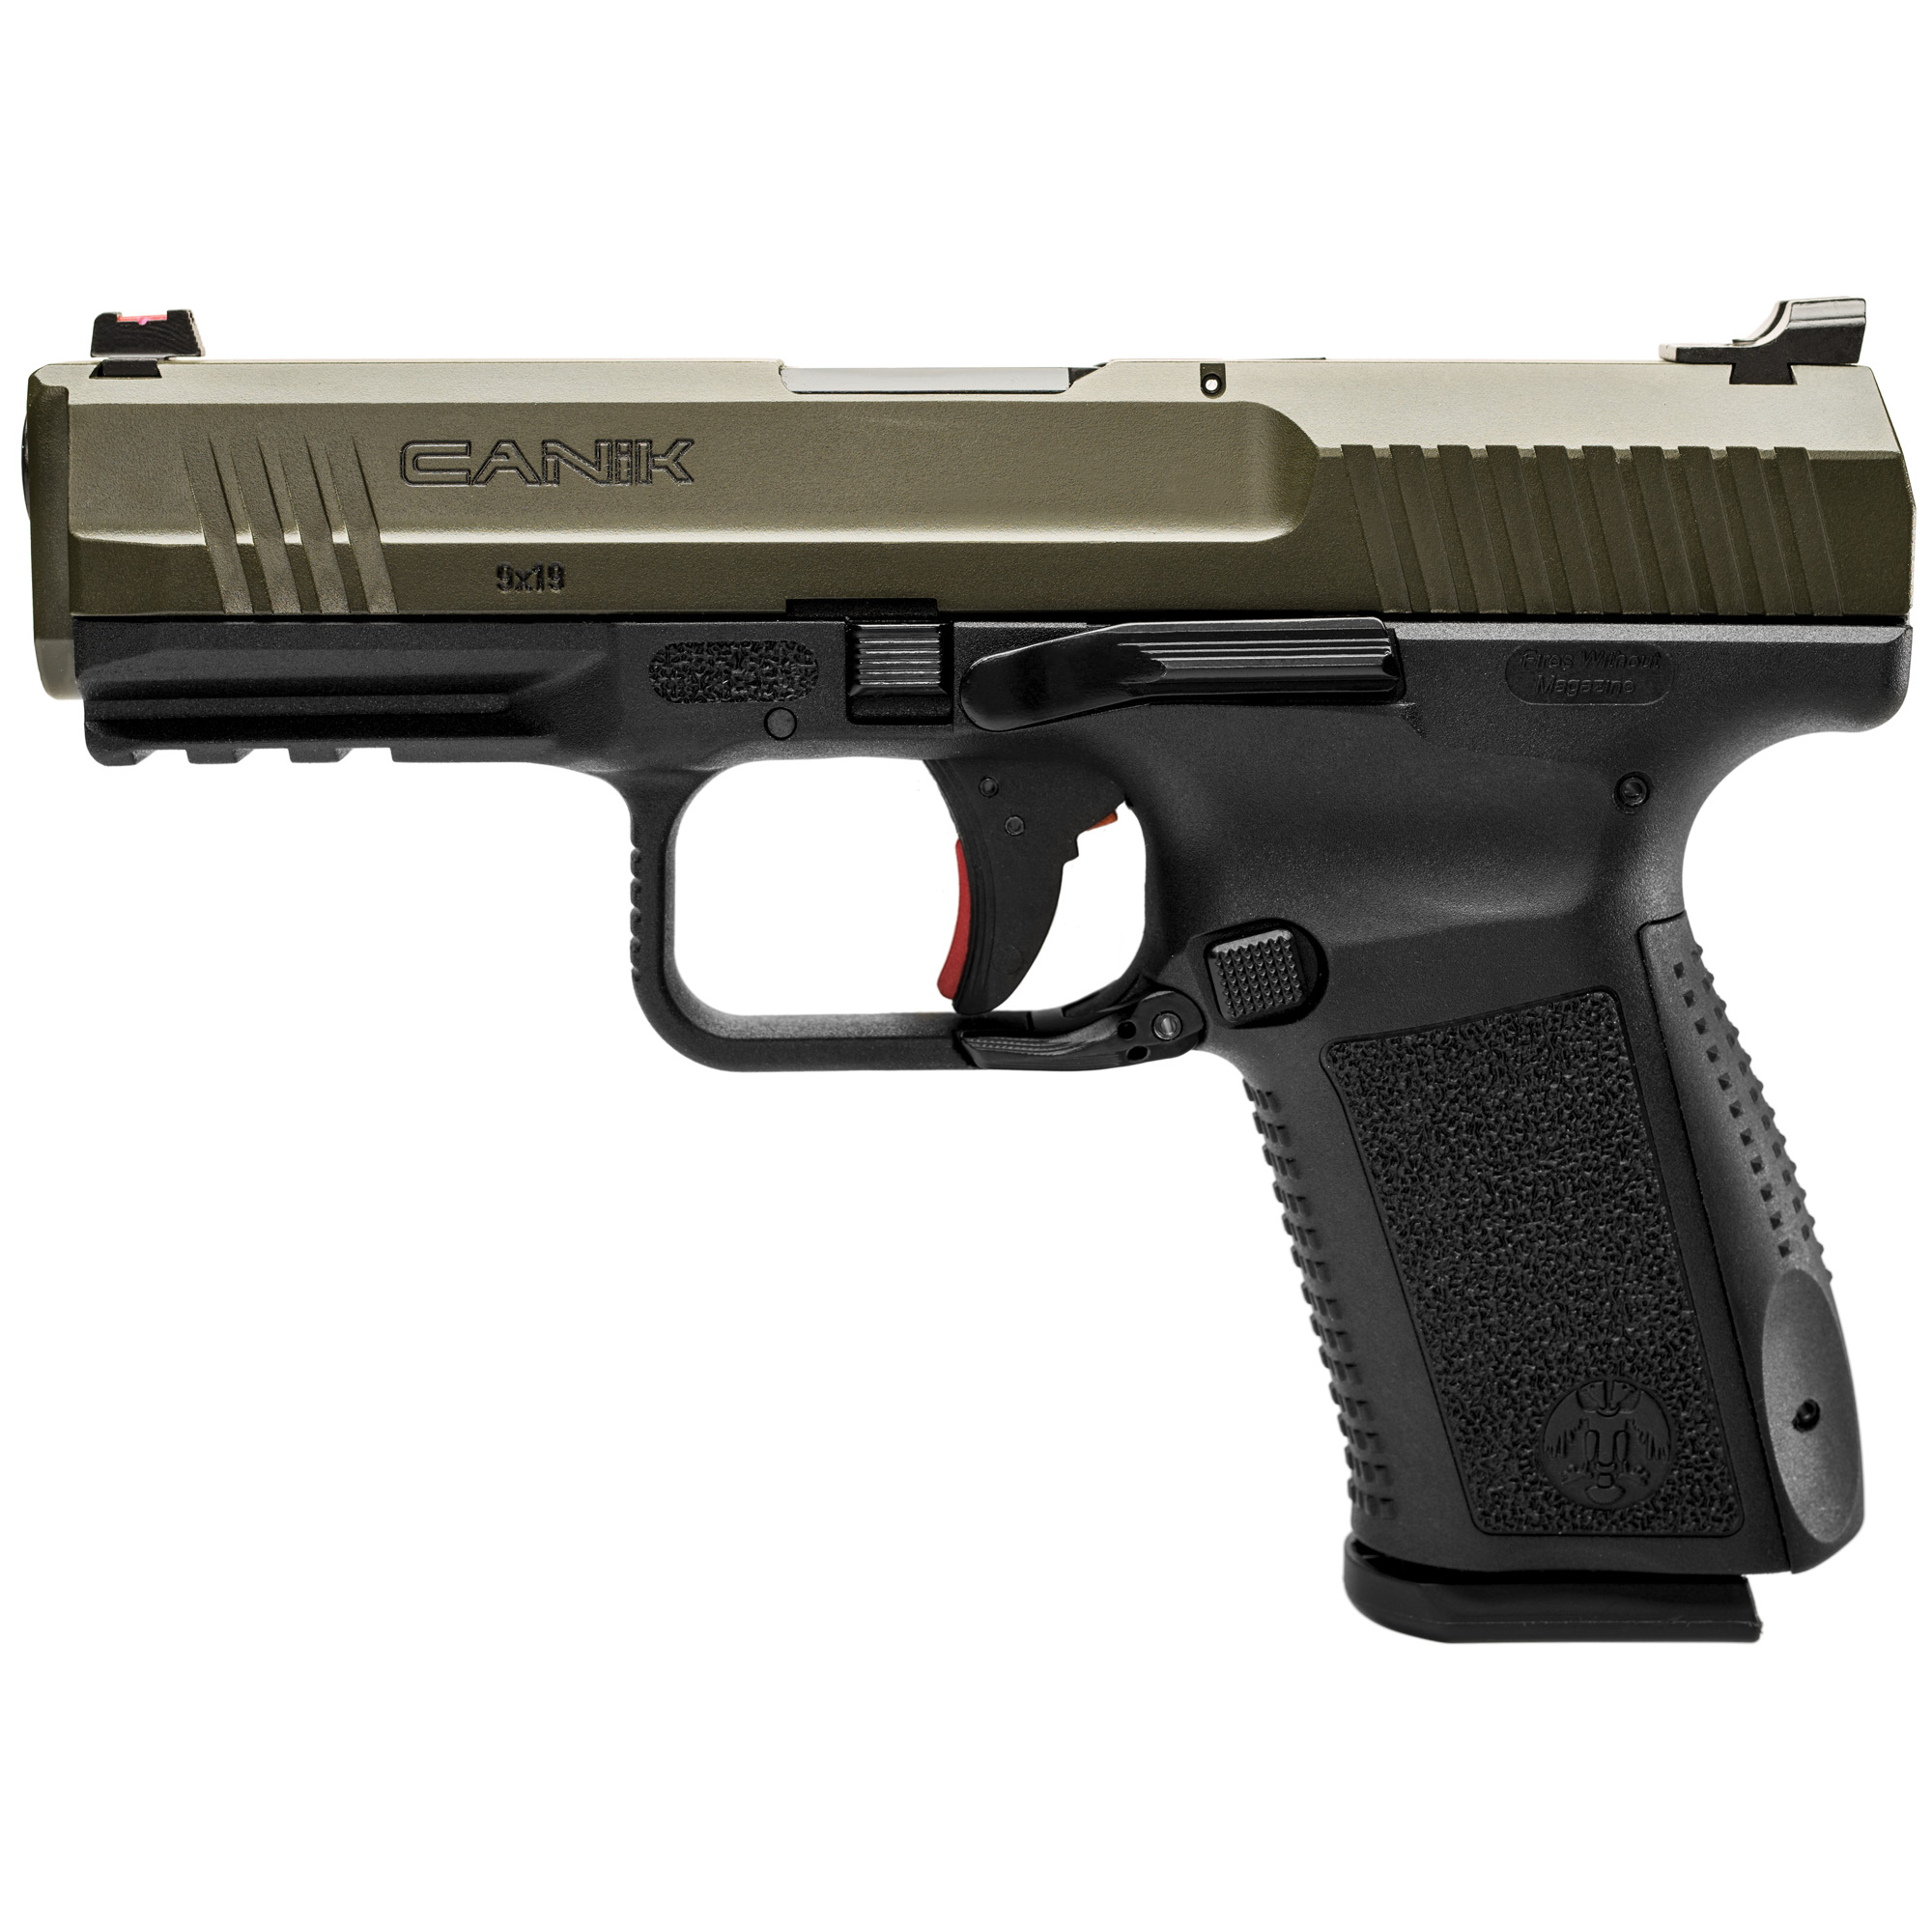 """The TP9SF Elite comes with Warren Tactical sights with red and green fiber optic front sight"""" ambidextrous slide release"""" reversible magazine catch"""" front and rear slide serrations and improved single action trigger."""